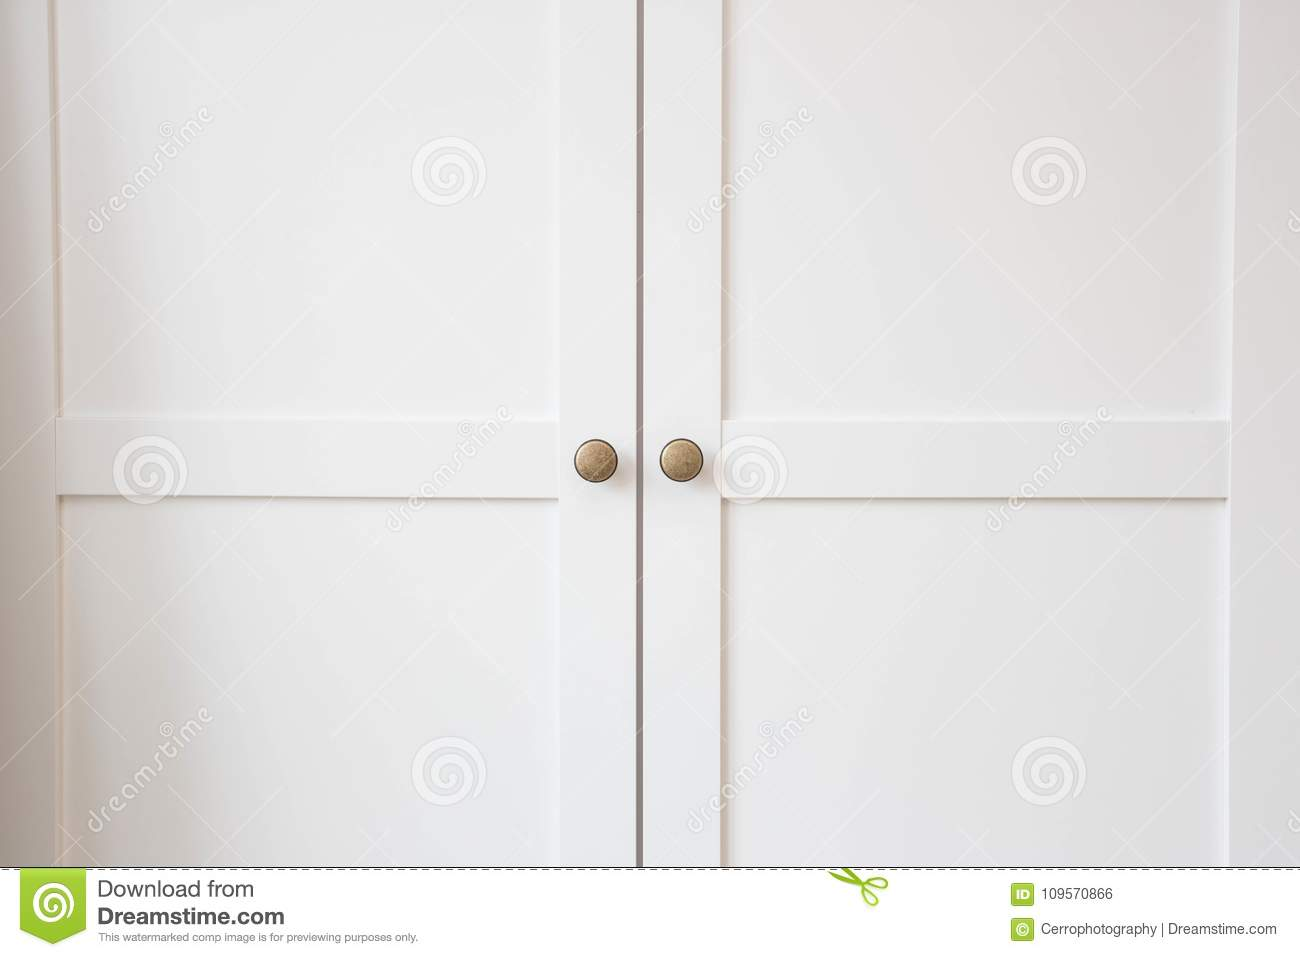 Download White Closet Doors Closeup Stock Photo. Image Of Cabinet    109570866